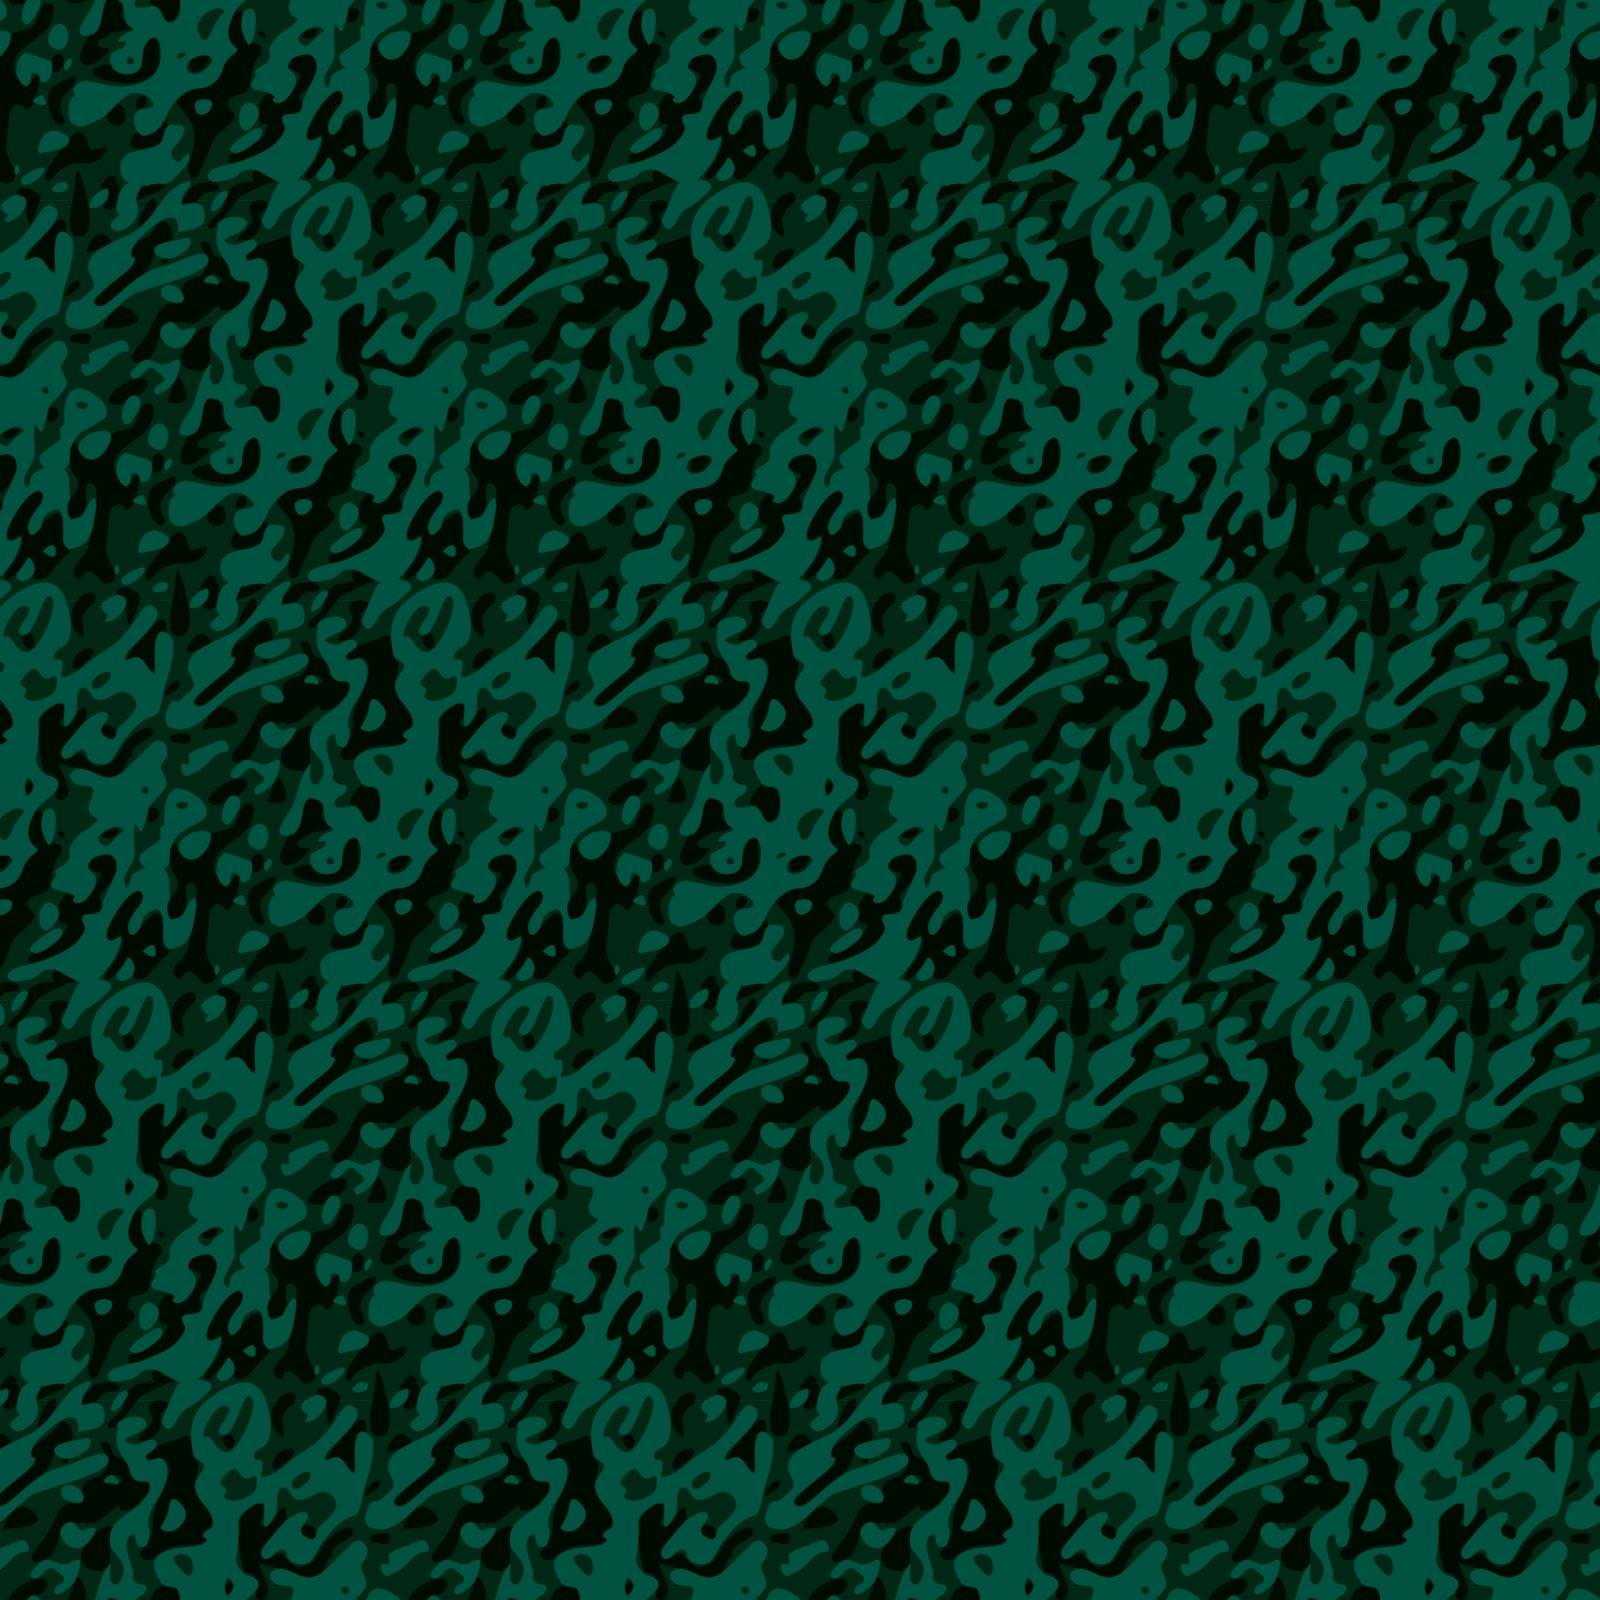 Seamless green vector camouflage pattern, green and dark gray camouflage texture